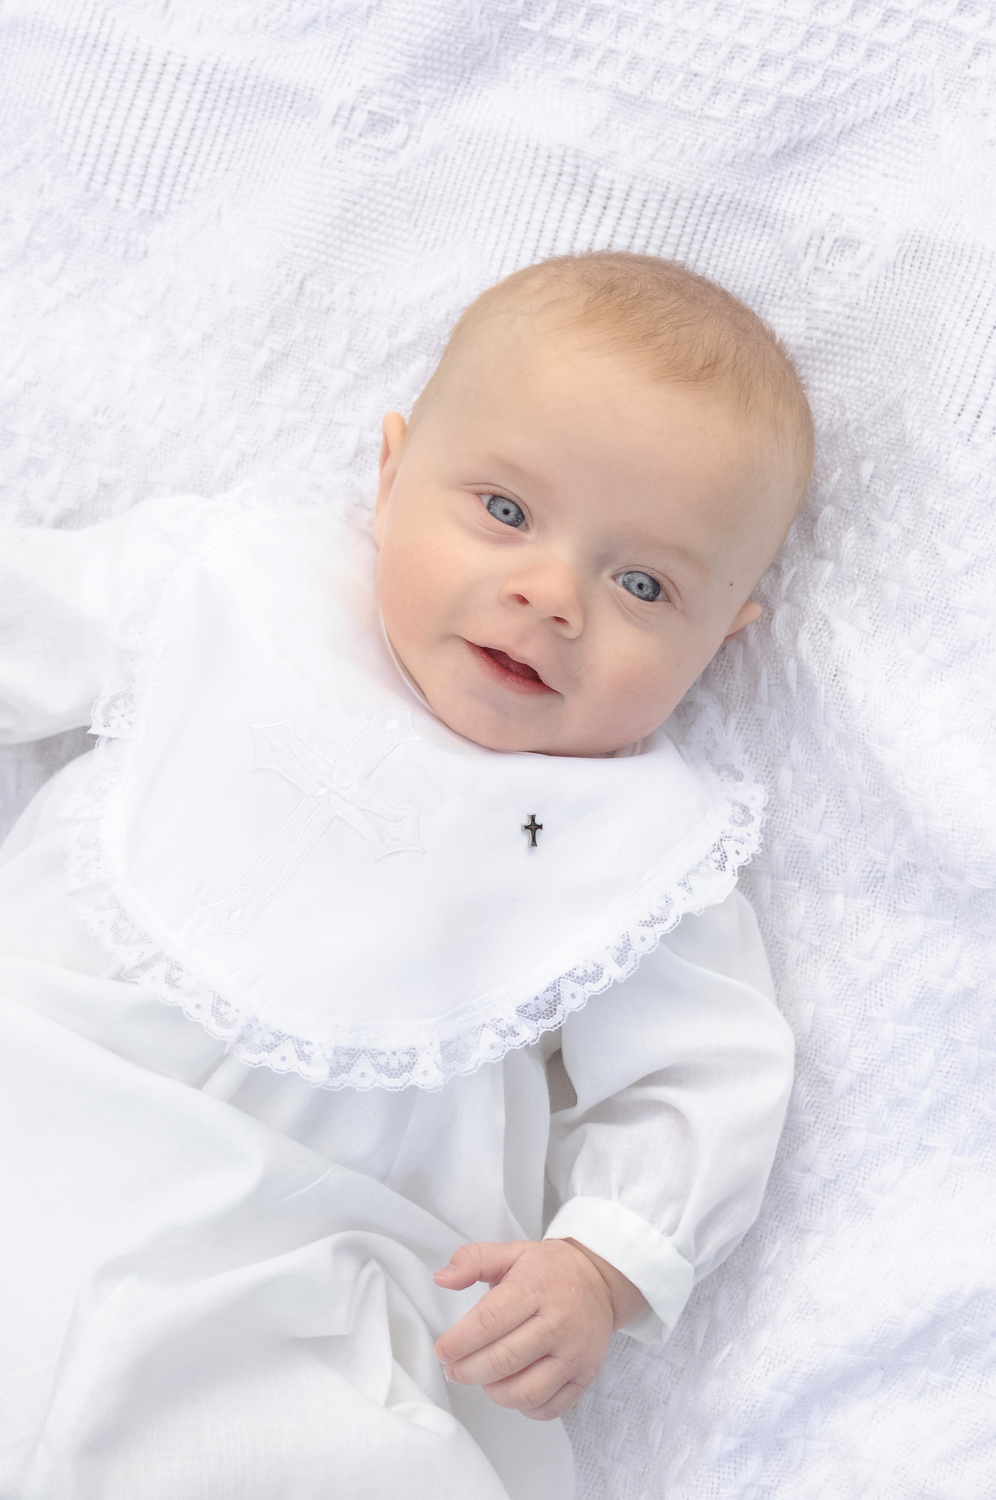 st-louis-baby-photography-boy-in-white-baptisim-gown-on-white-blanket.jpg